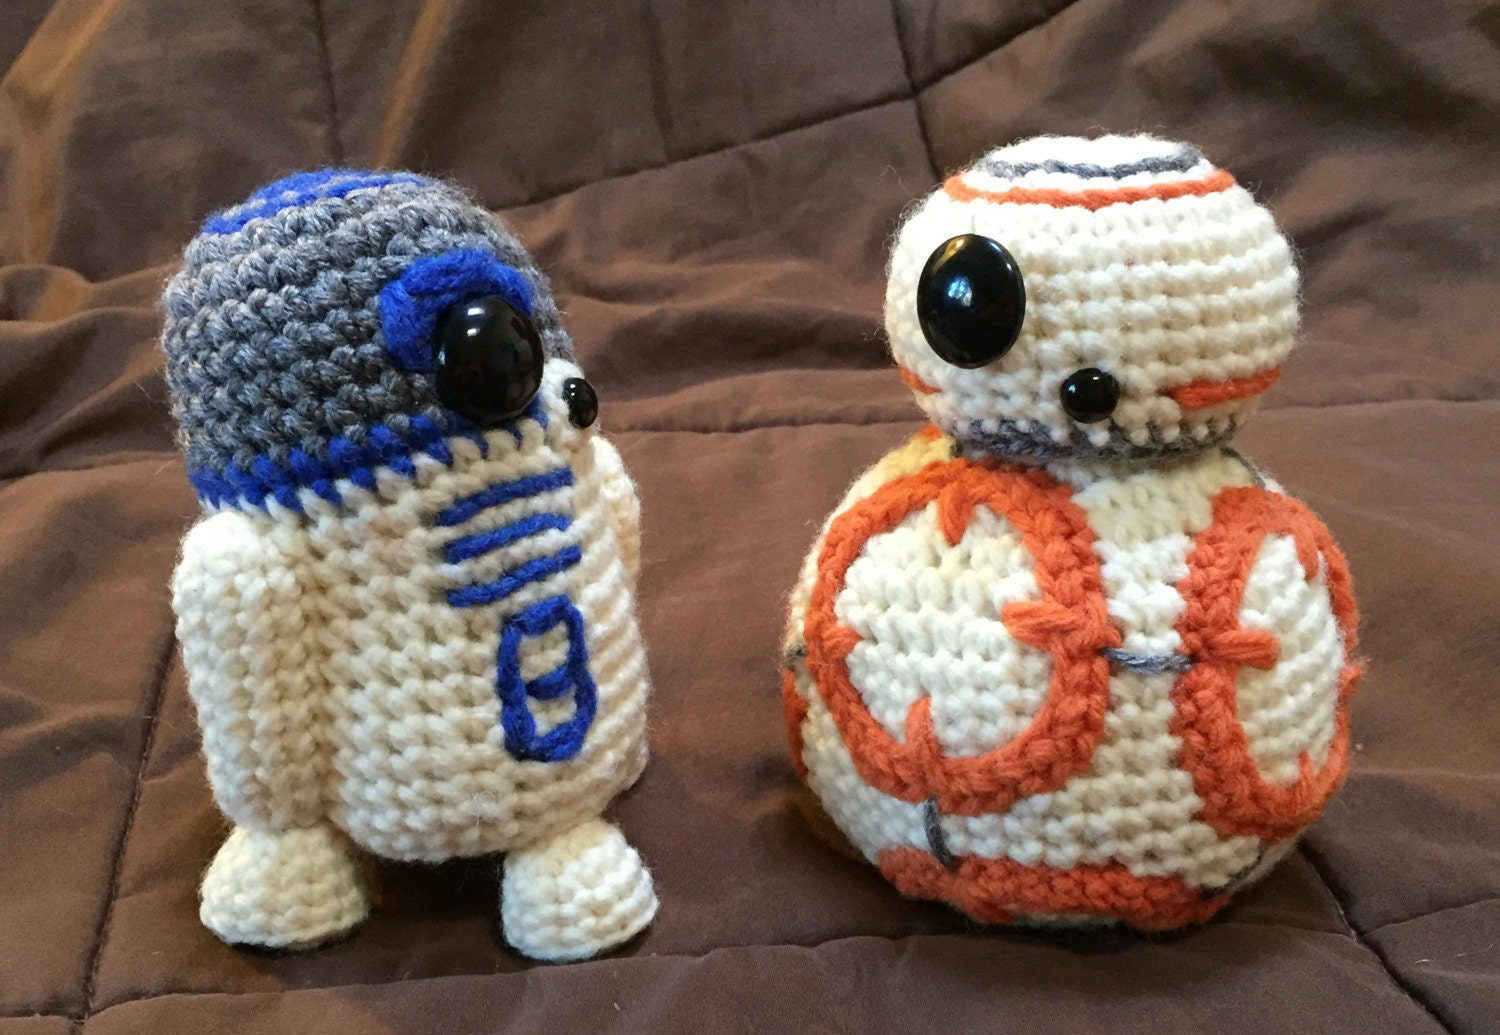 BB8 AND R2D2 Star Wars Inspired Crochet Patterns 2 for 1